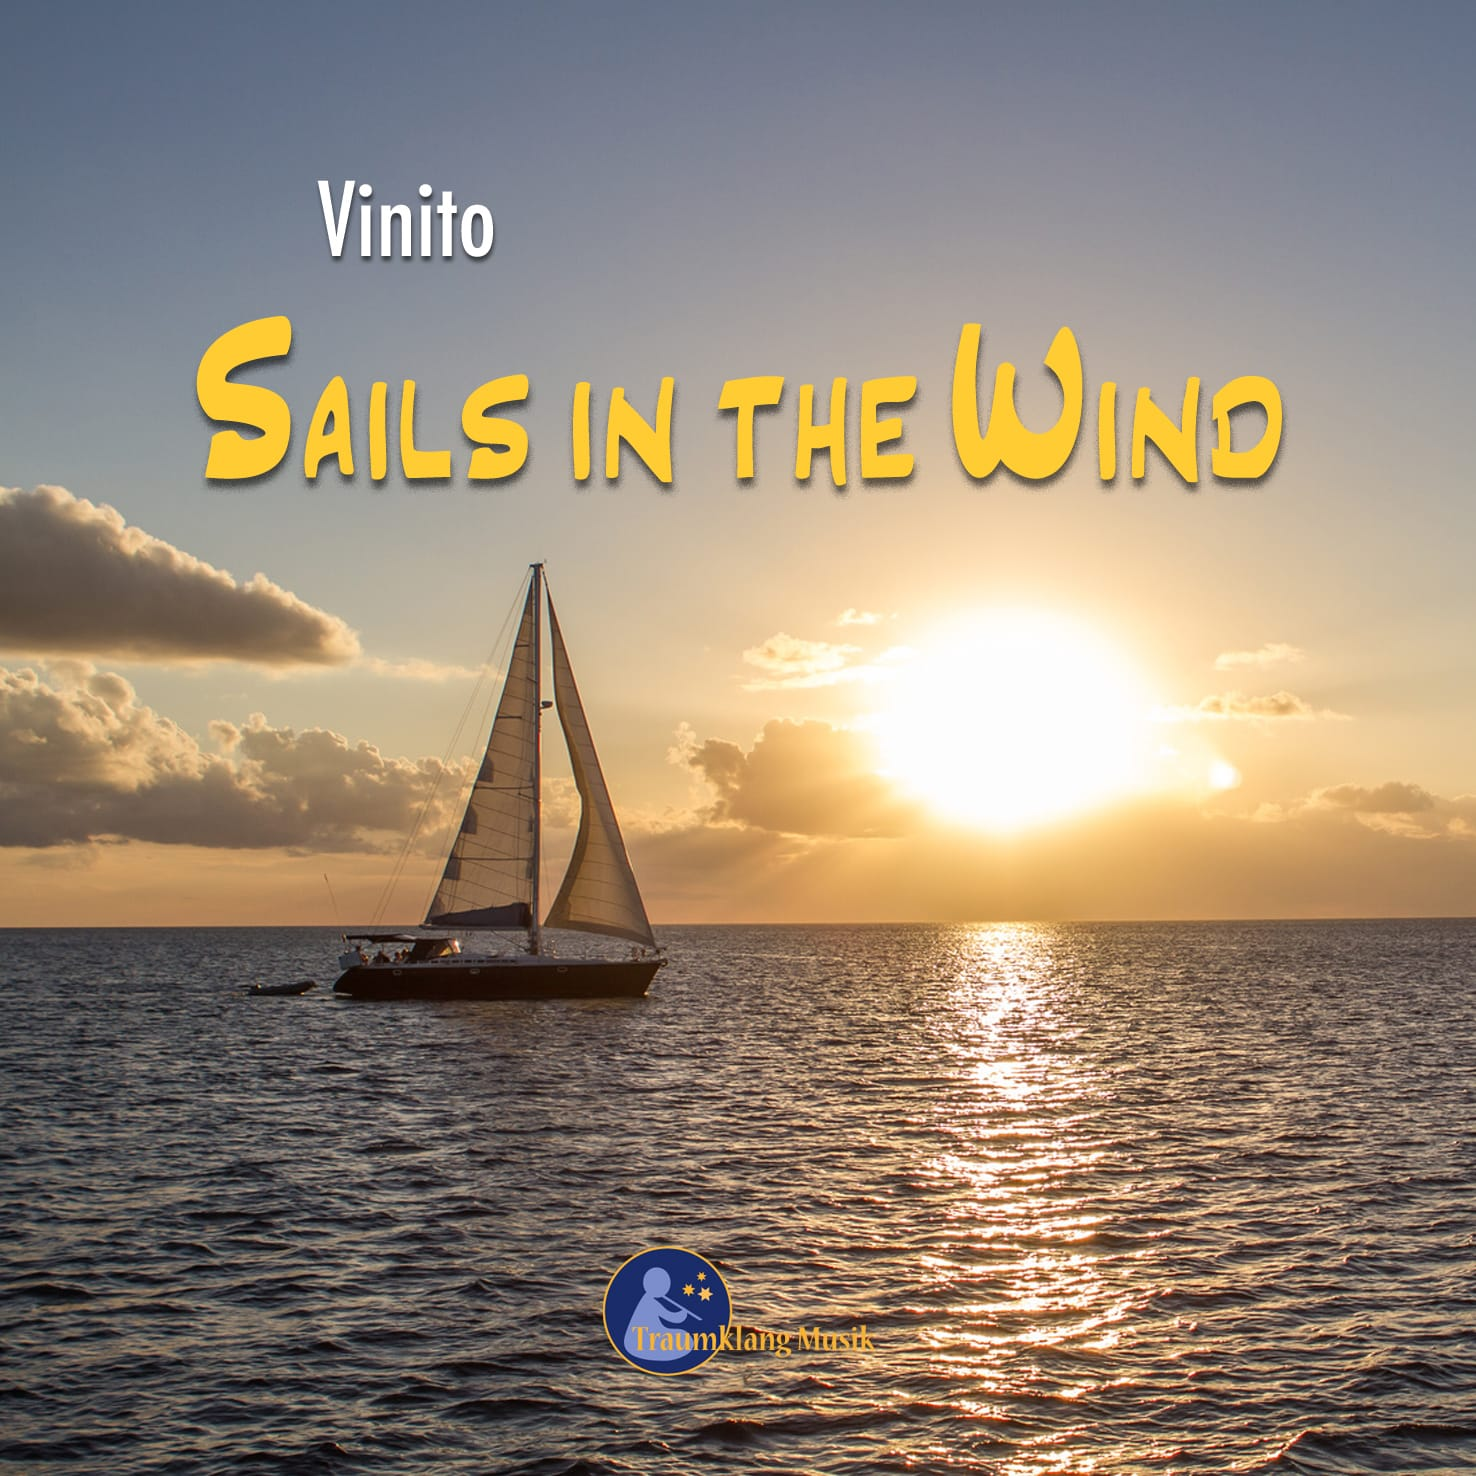 Album: Sails in the Wind